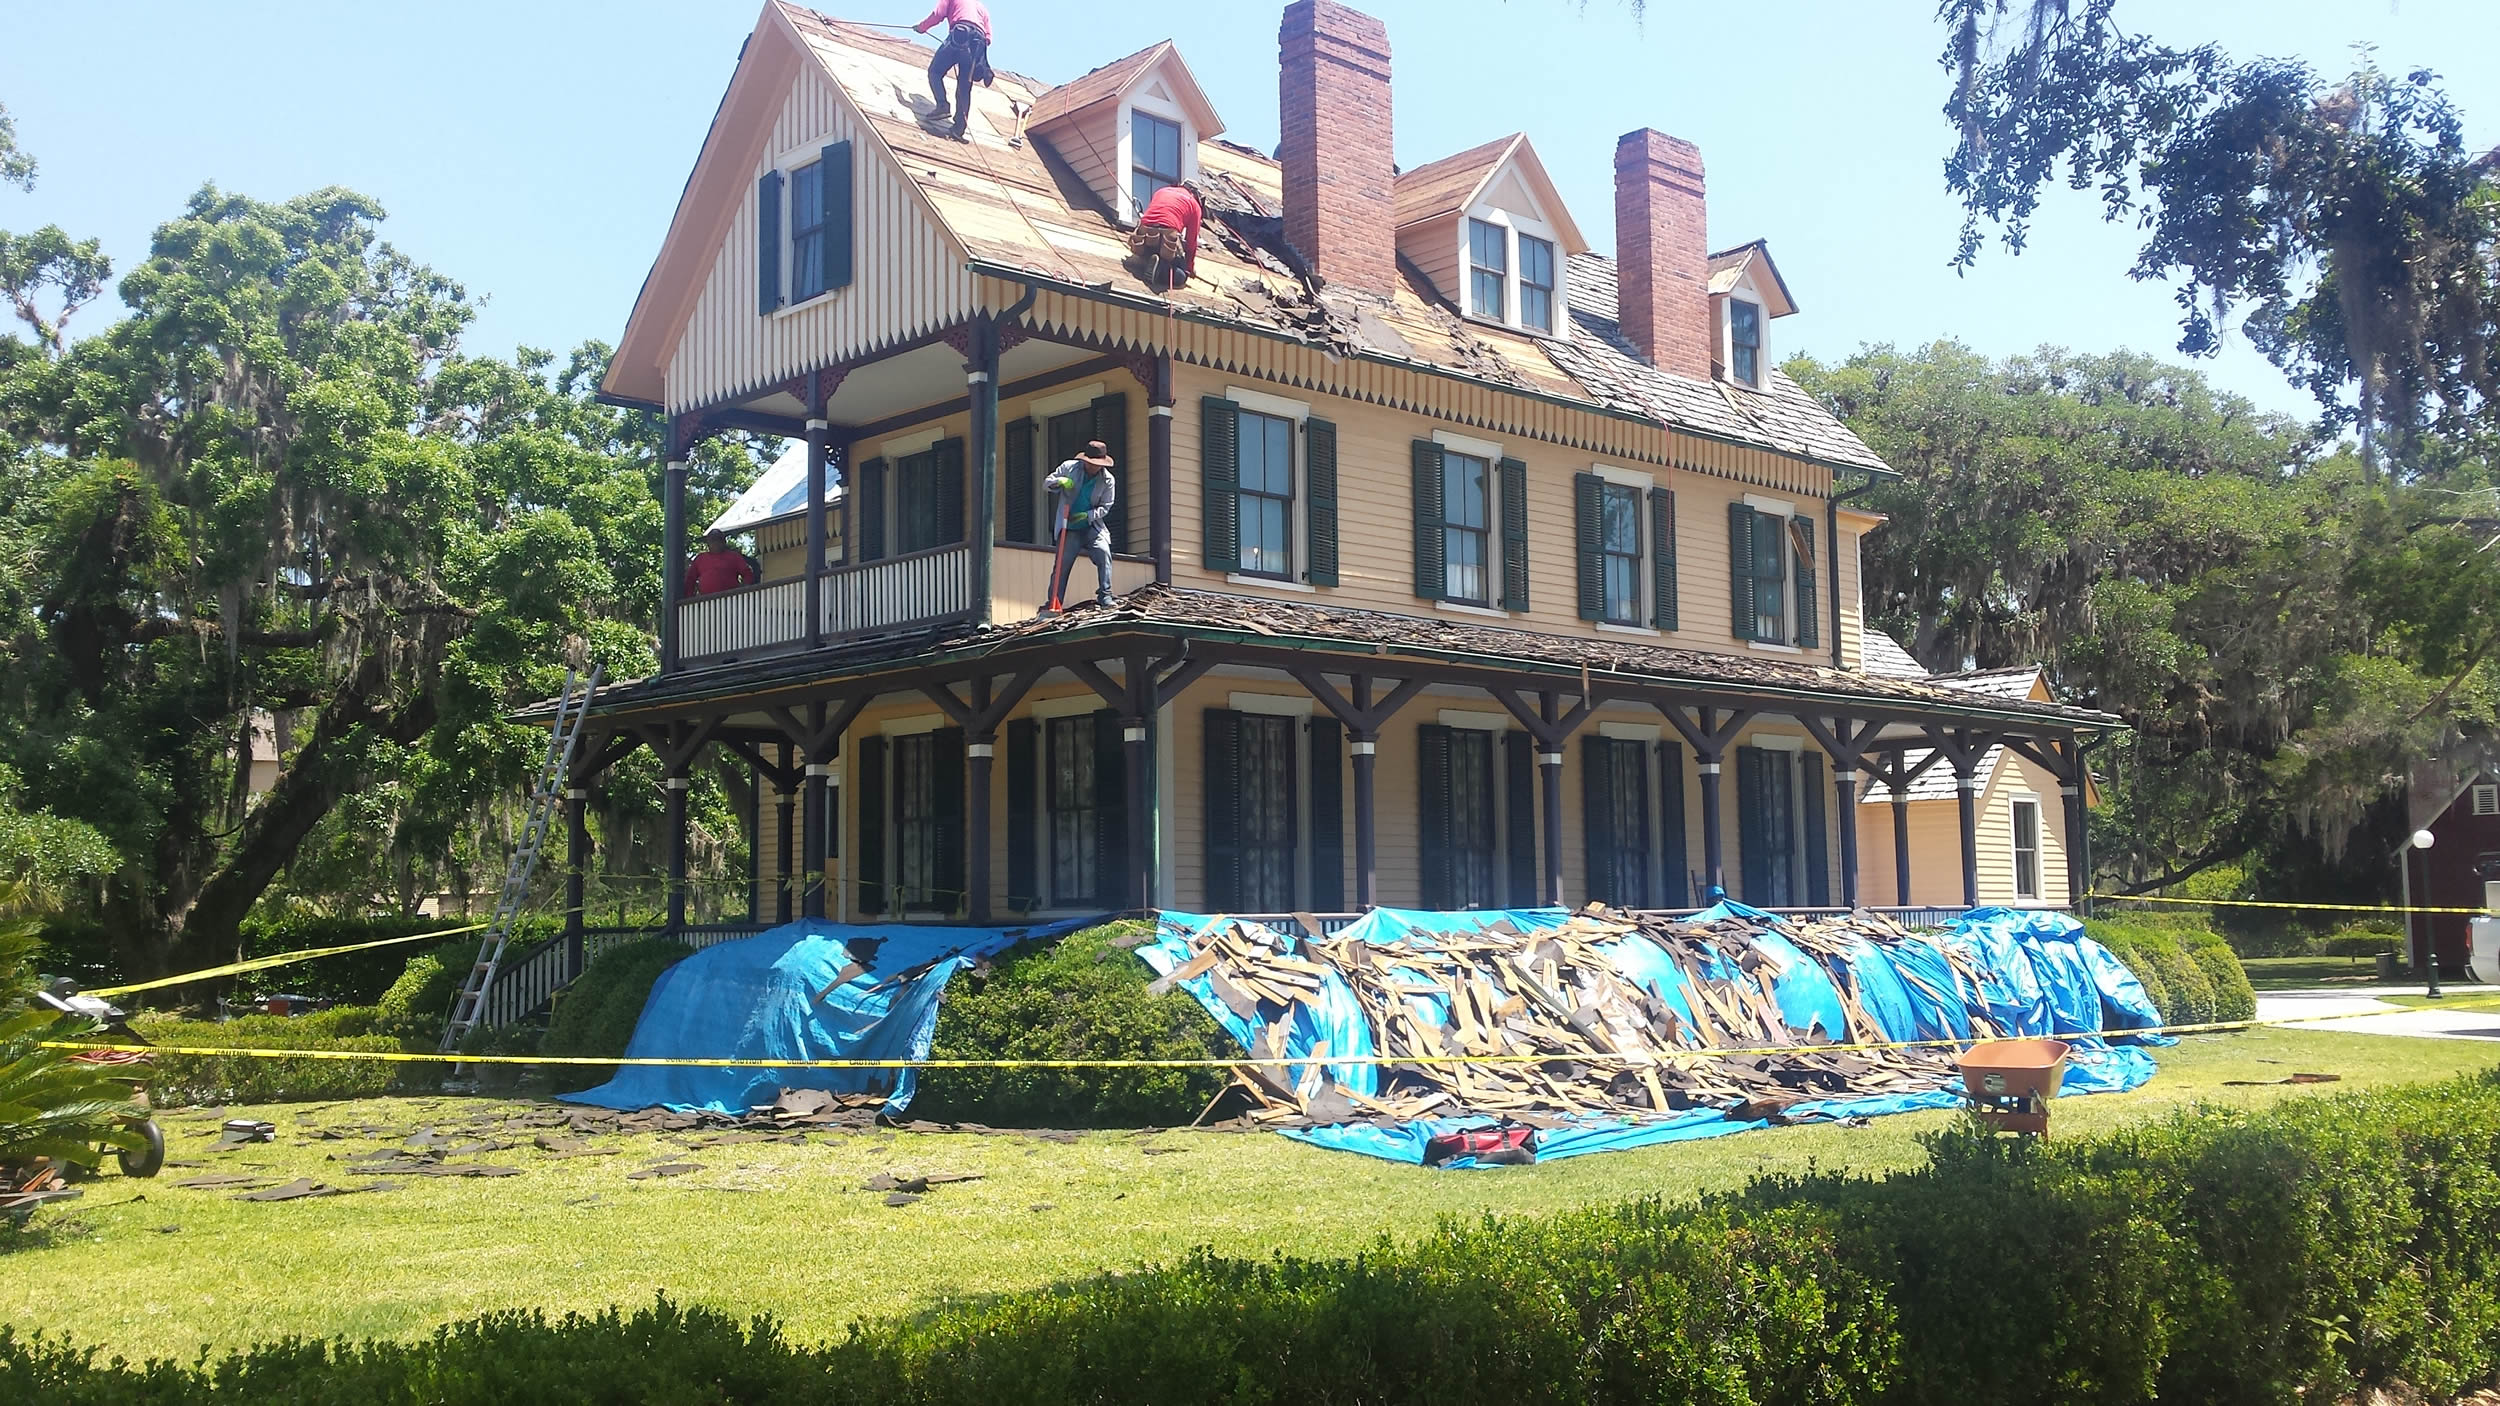 One of the old summer cottages being restored in the historic village on Jekyll Island.